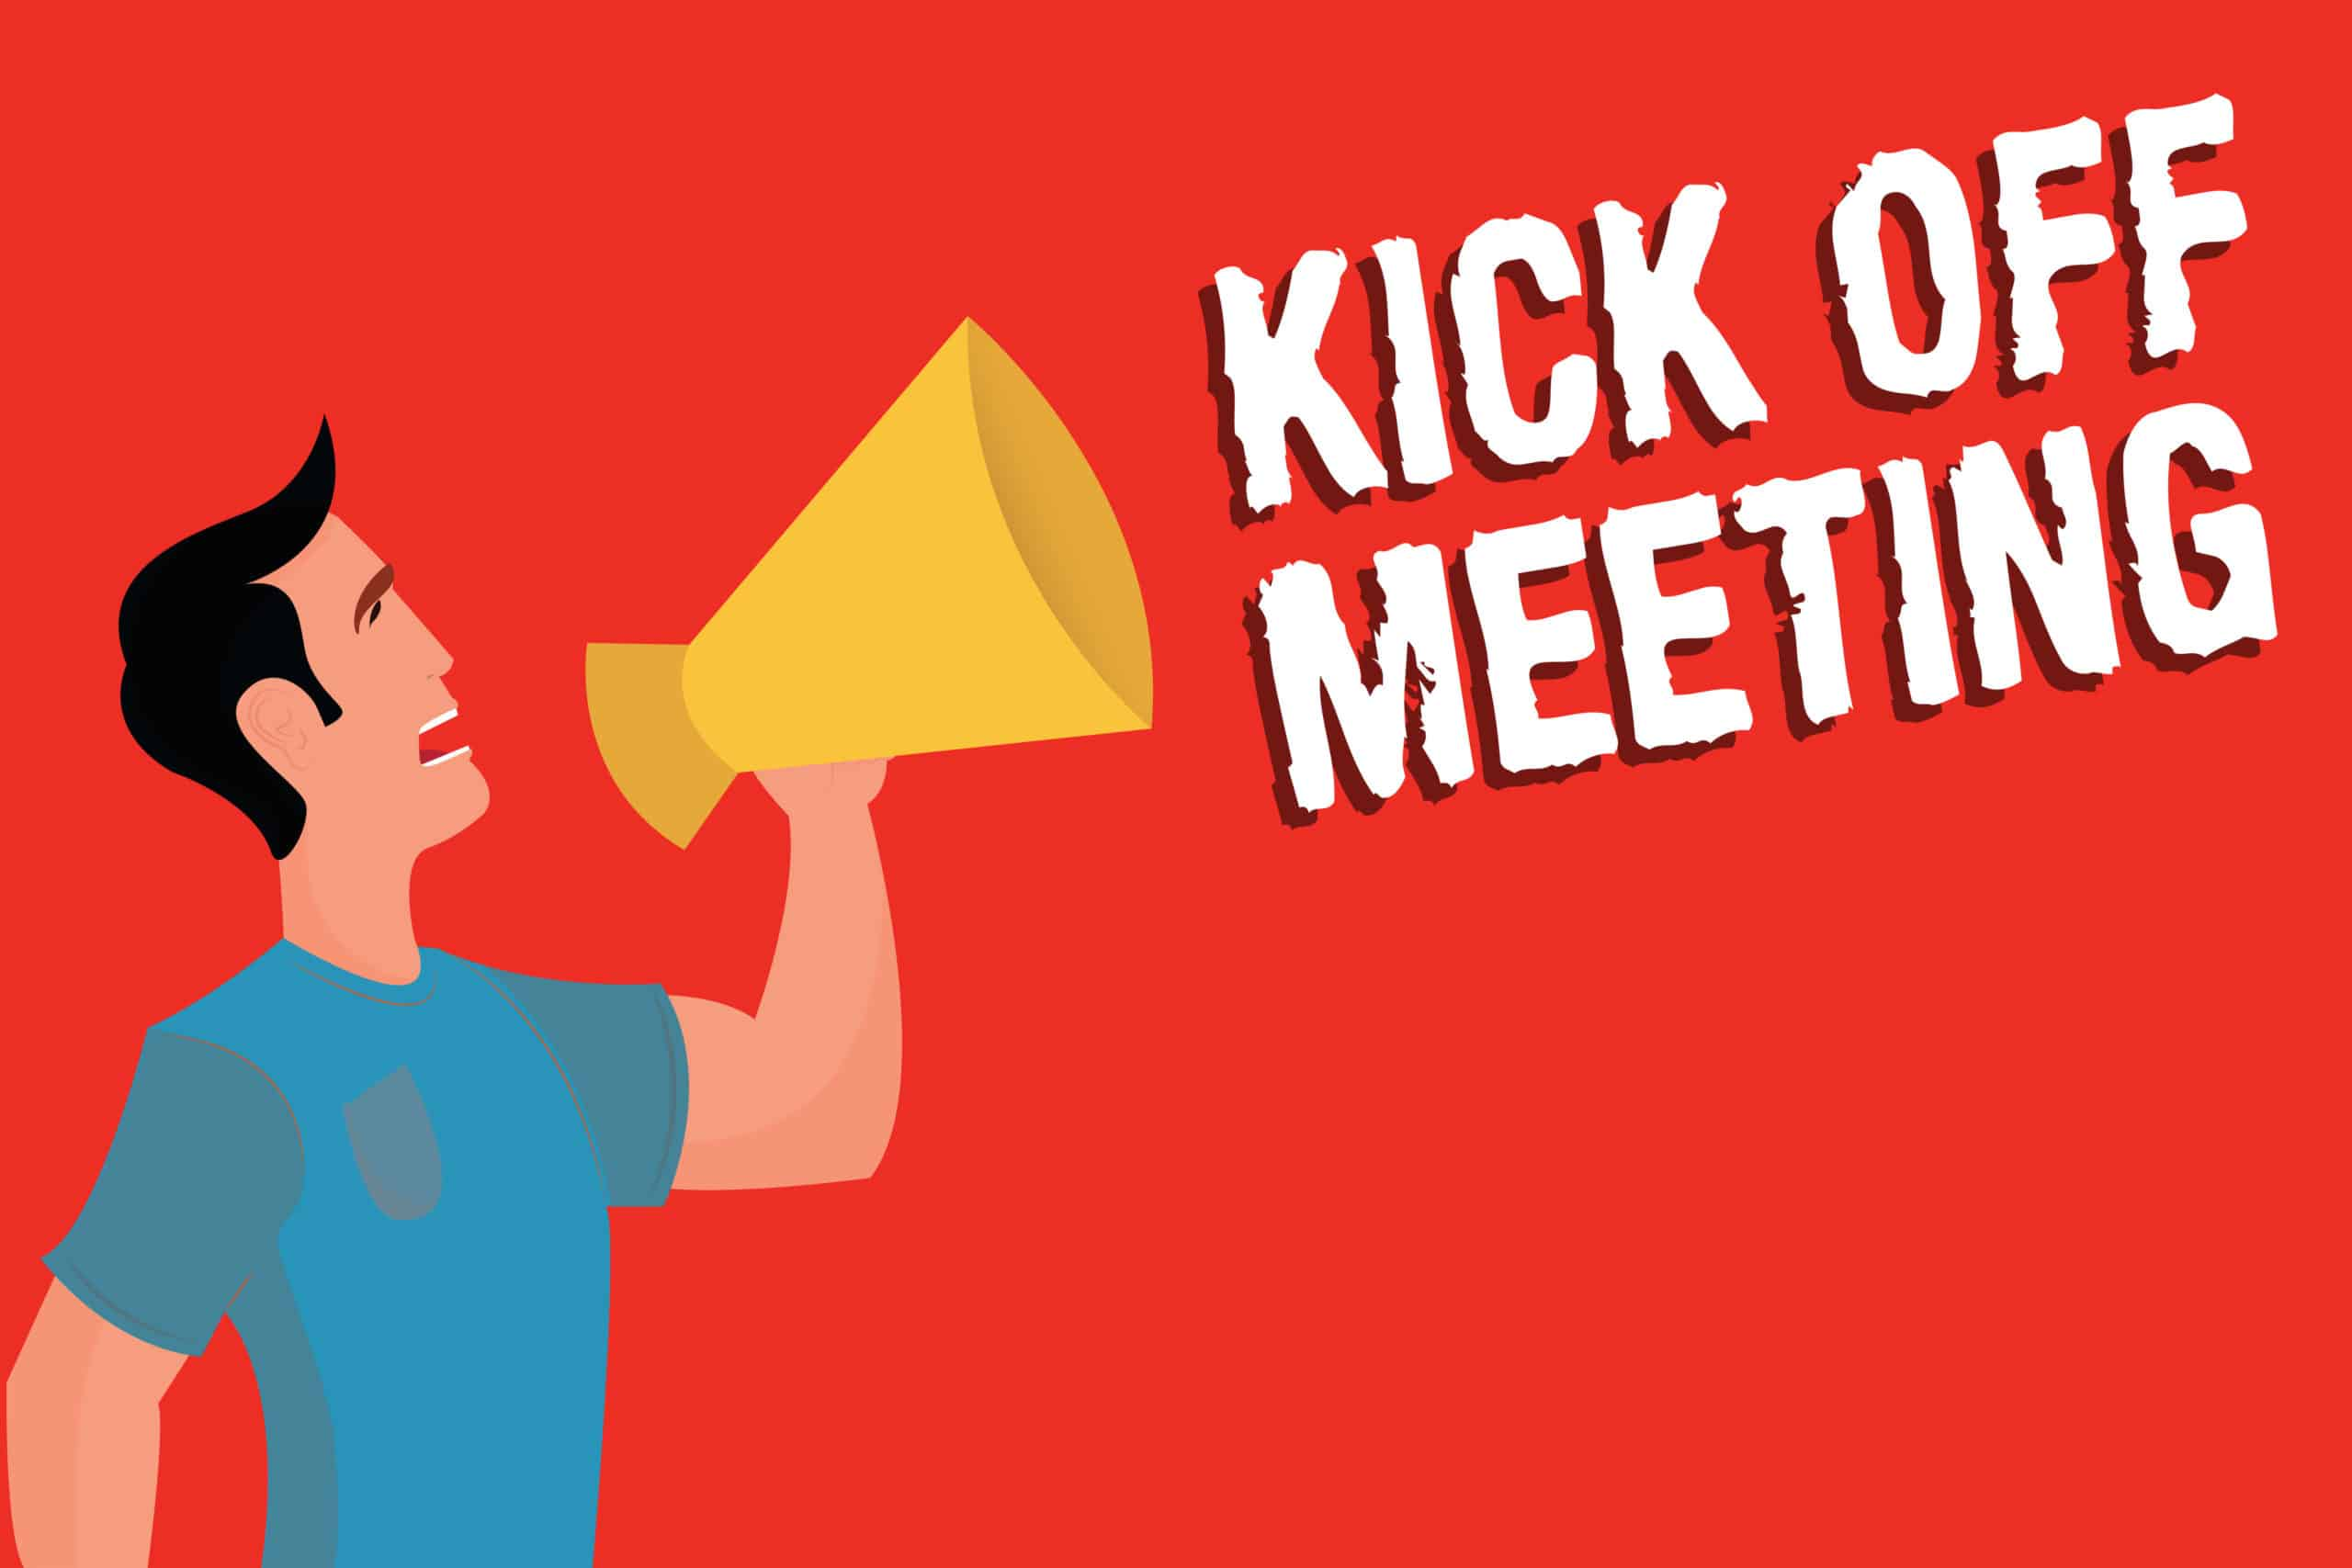 kick off meeting, kick off meeting essentials, conflict resolution, conflict management, conflict at work place